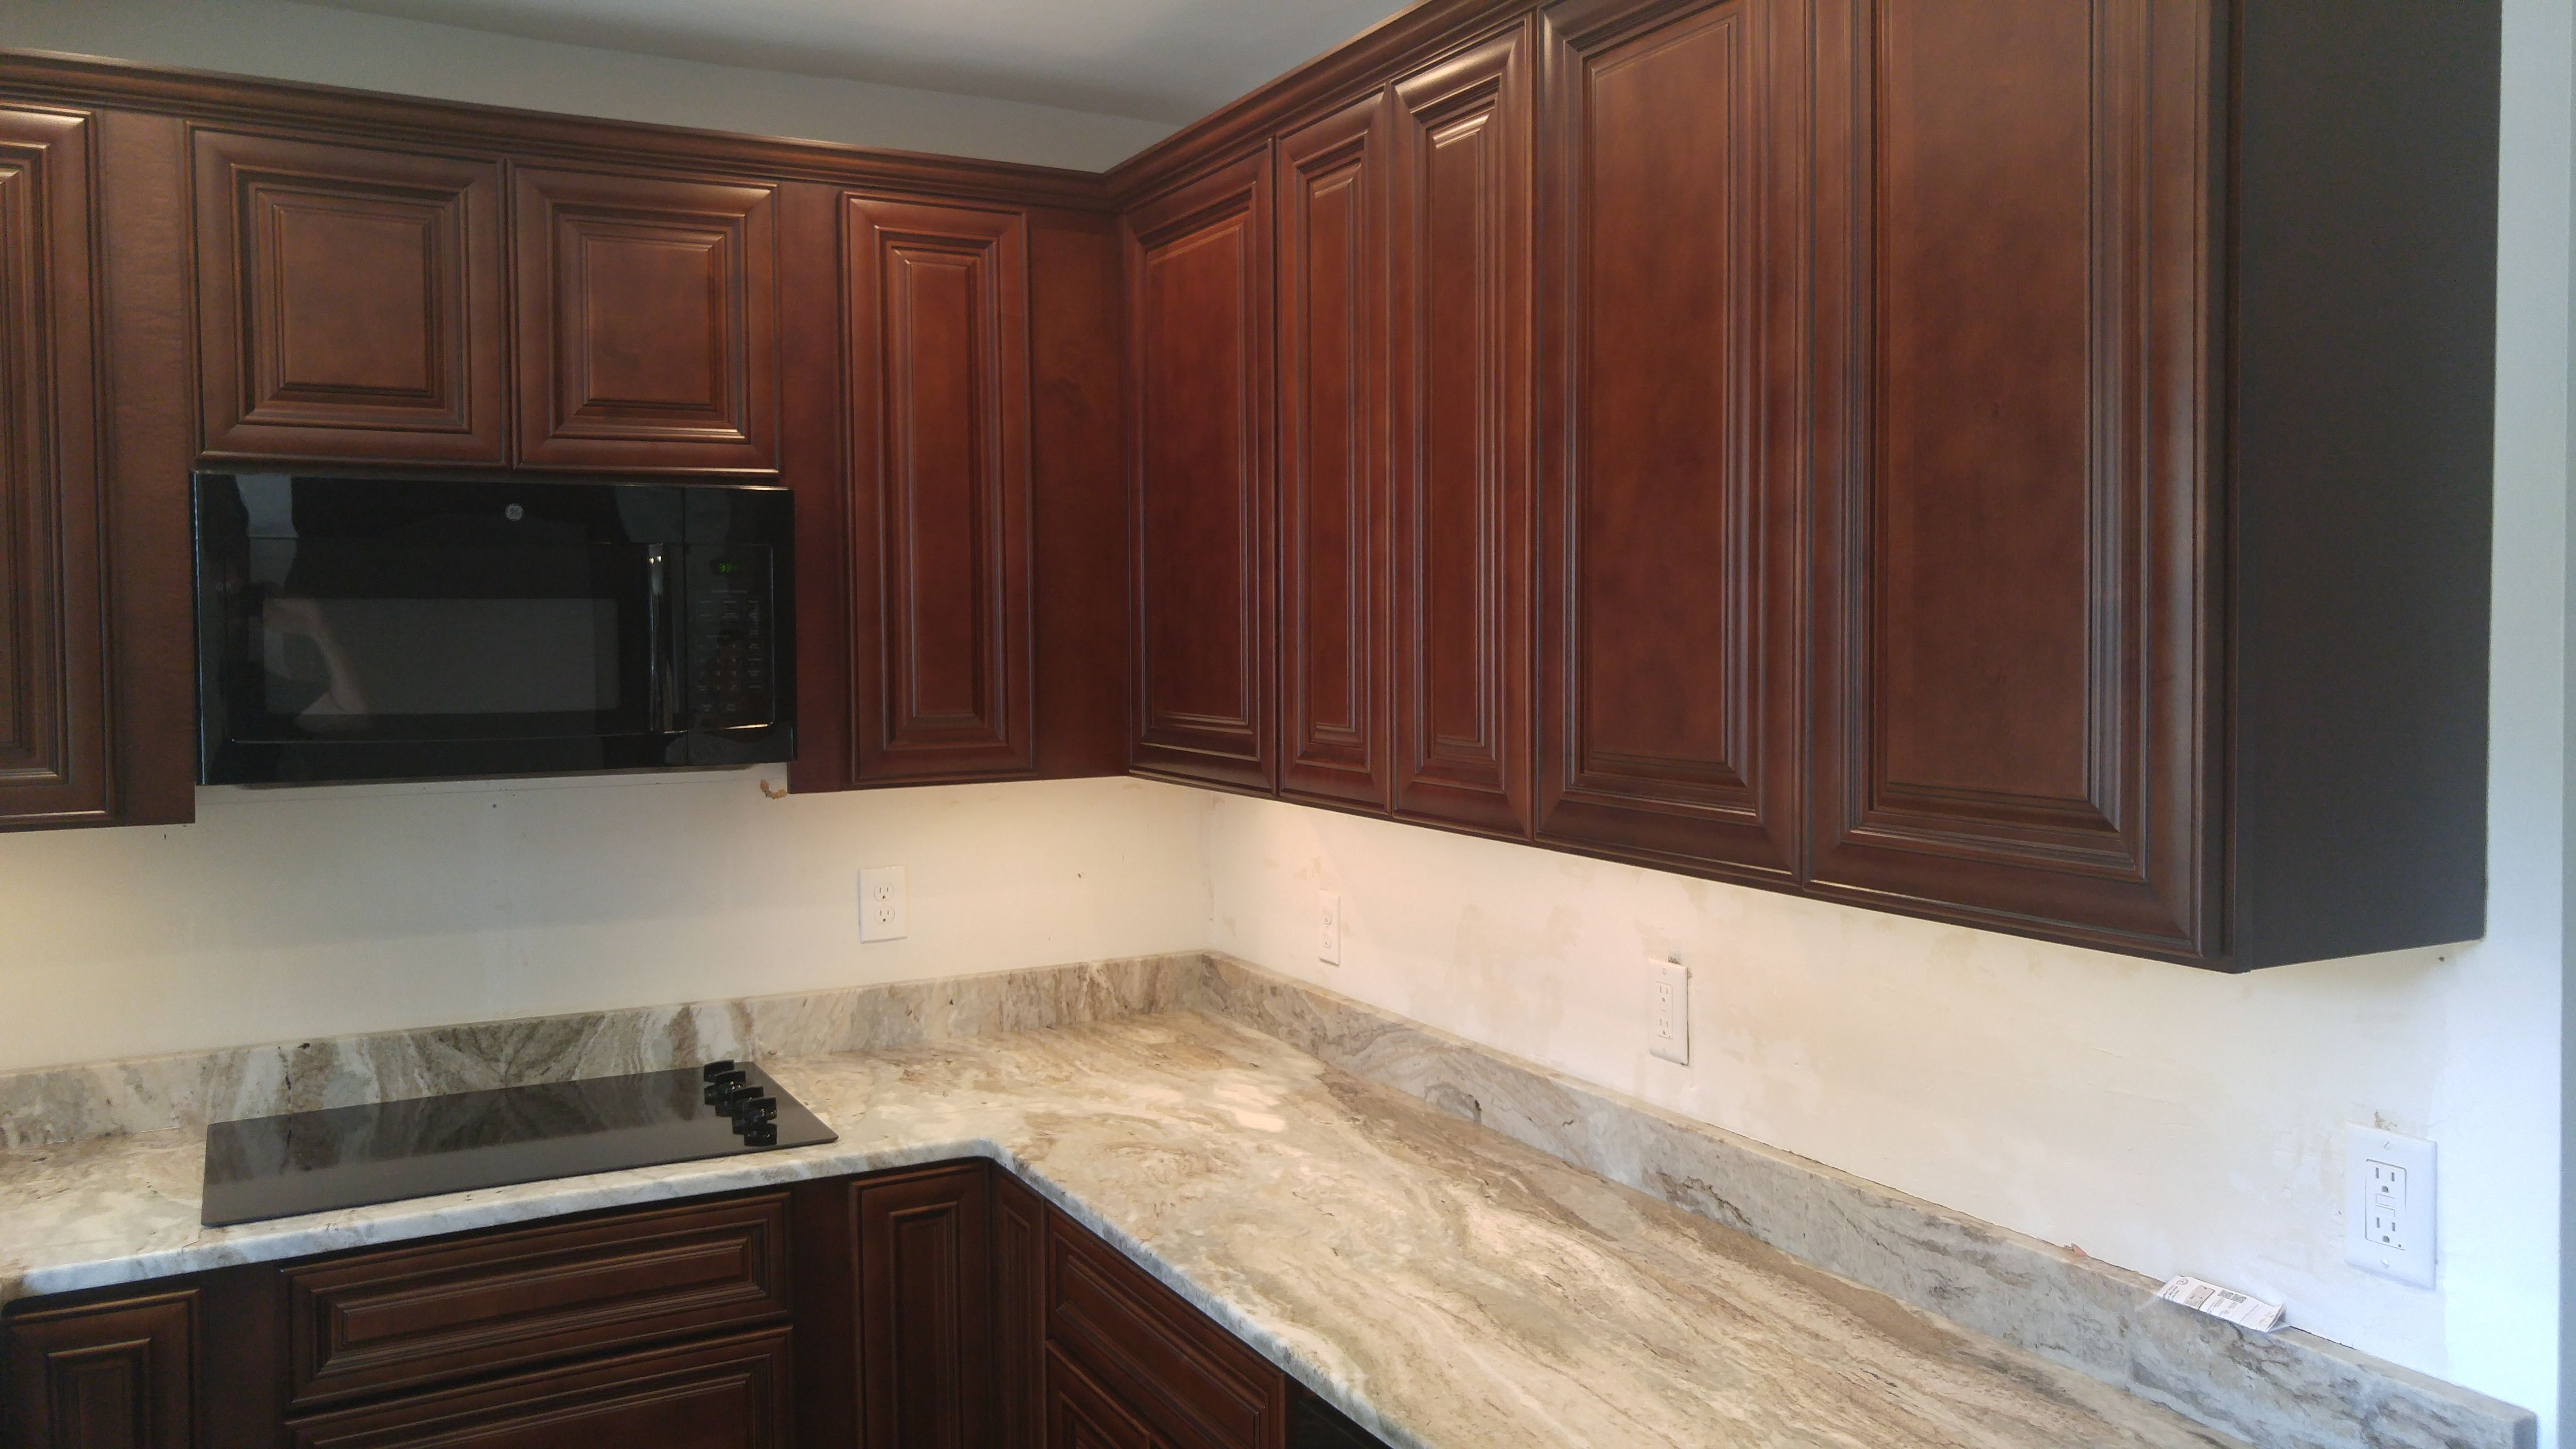 aspen how for founder cabinet make to cabinets finish doors shaker us wood white full depot best size kitchen of home gallant